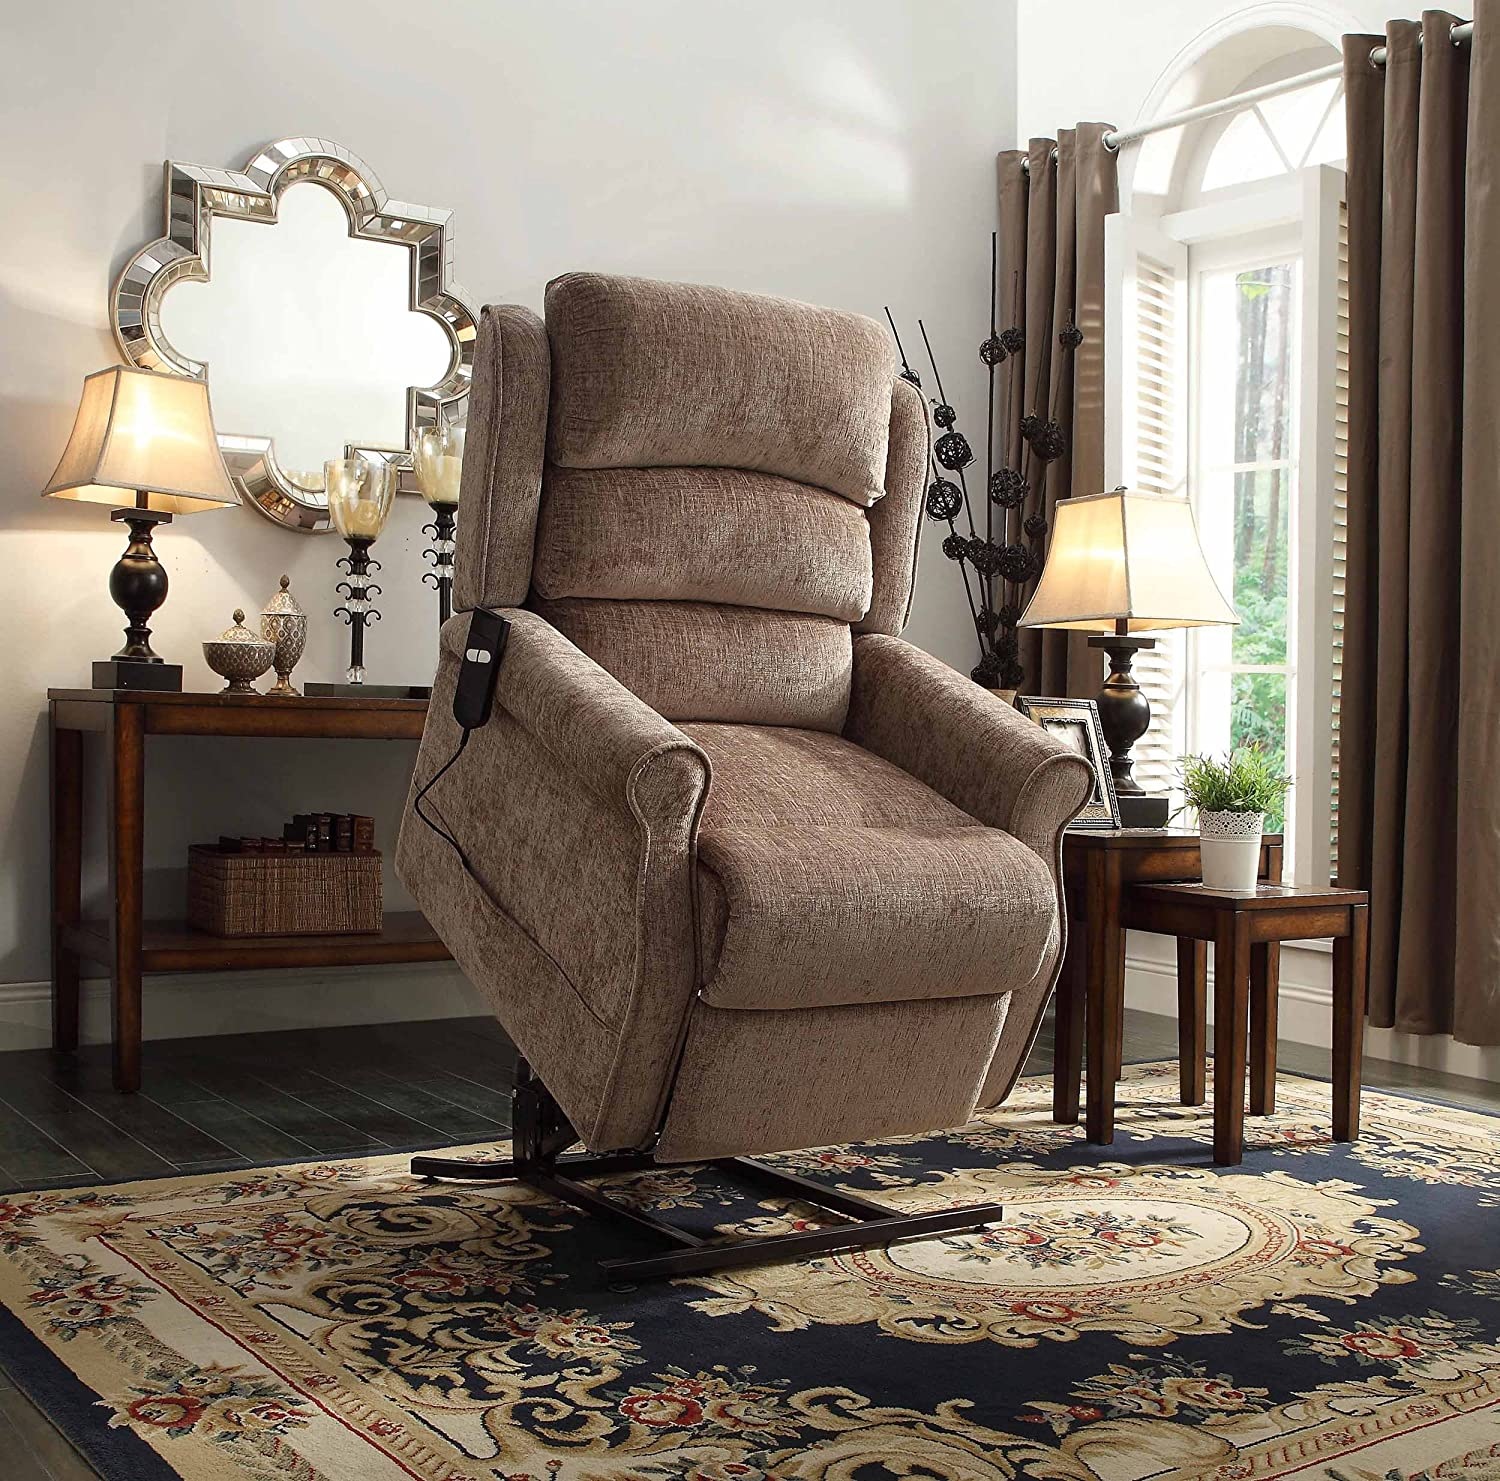 Amazon.com Homelegance 8509-1LT Power Lift Recliner Chair Brown Chenille Kitchen u0026 Dining & Amazon.com: Homelegance 8509-1LT Power Lift Recliner Chair Brown ... islam-shia.org